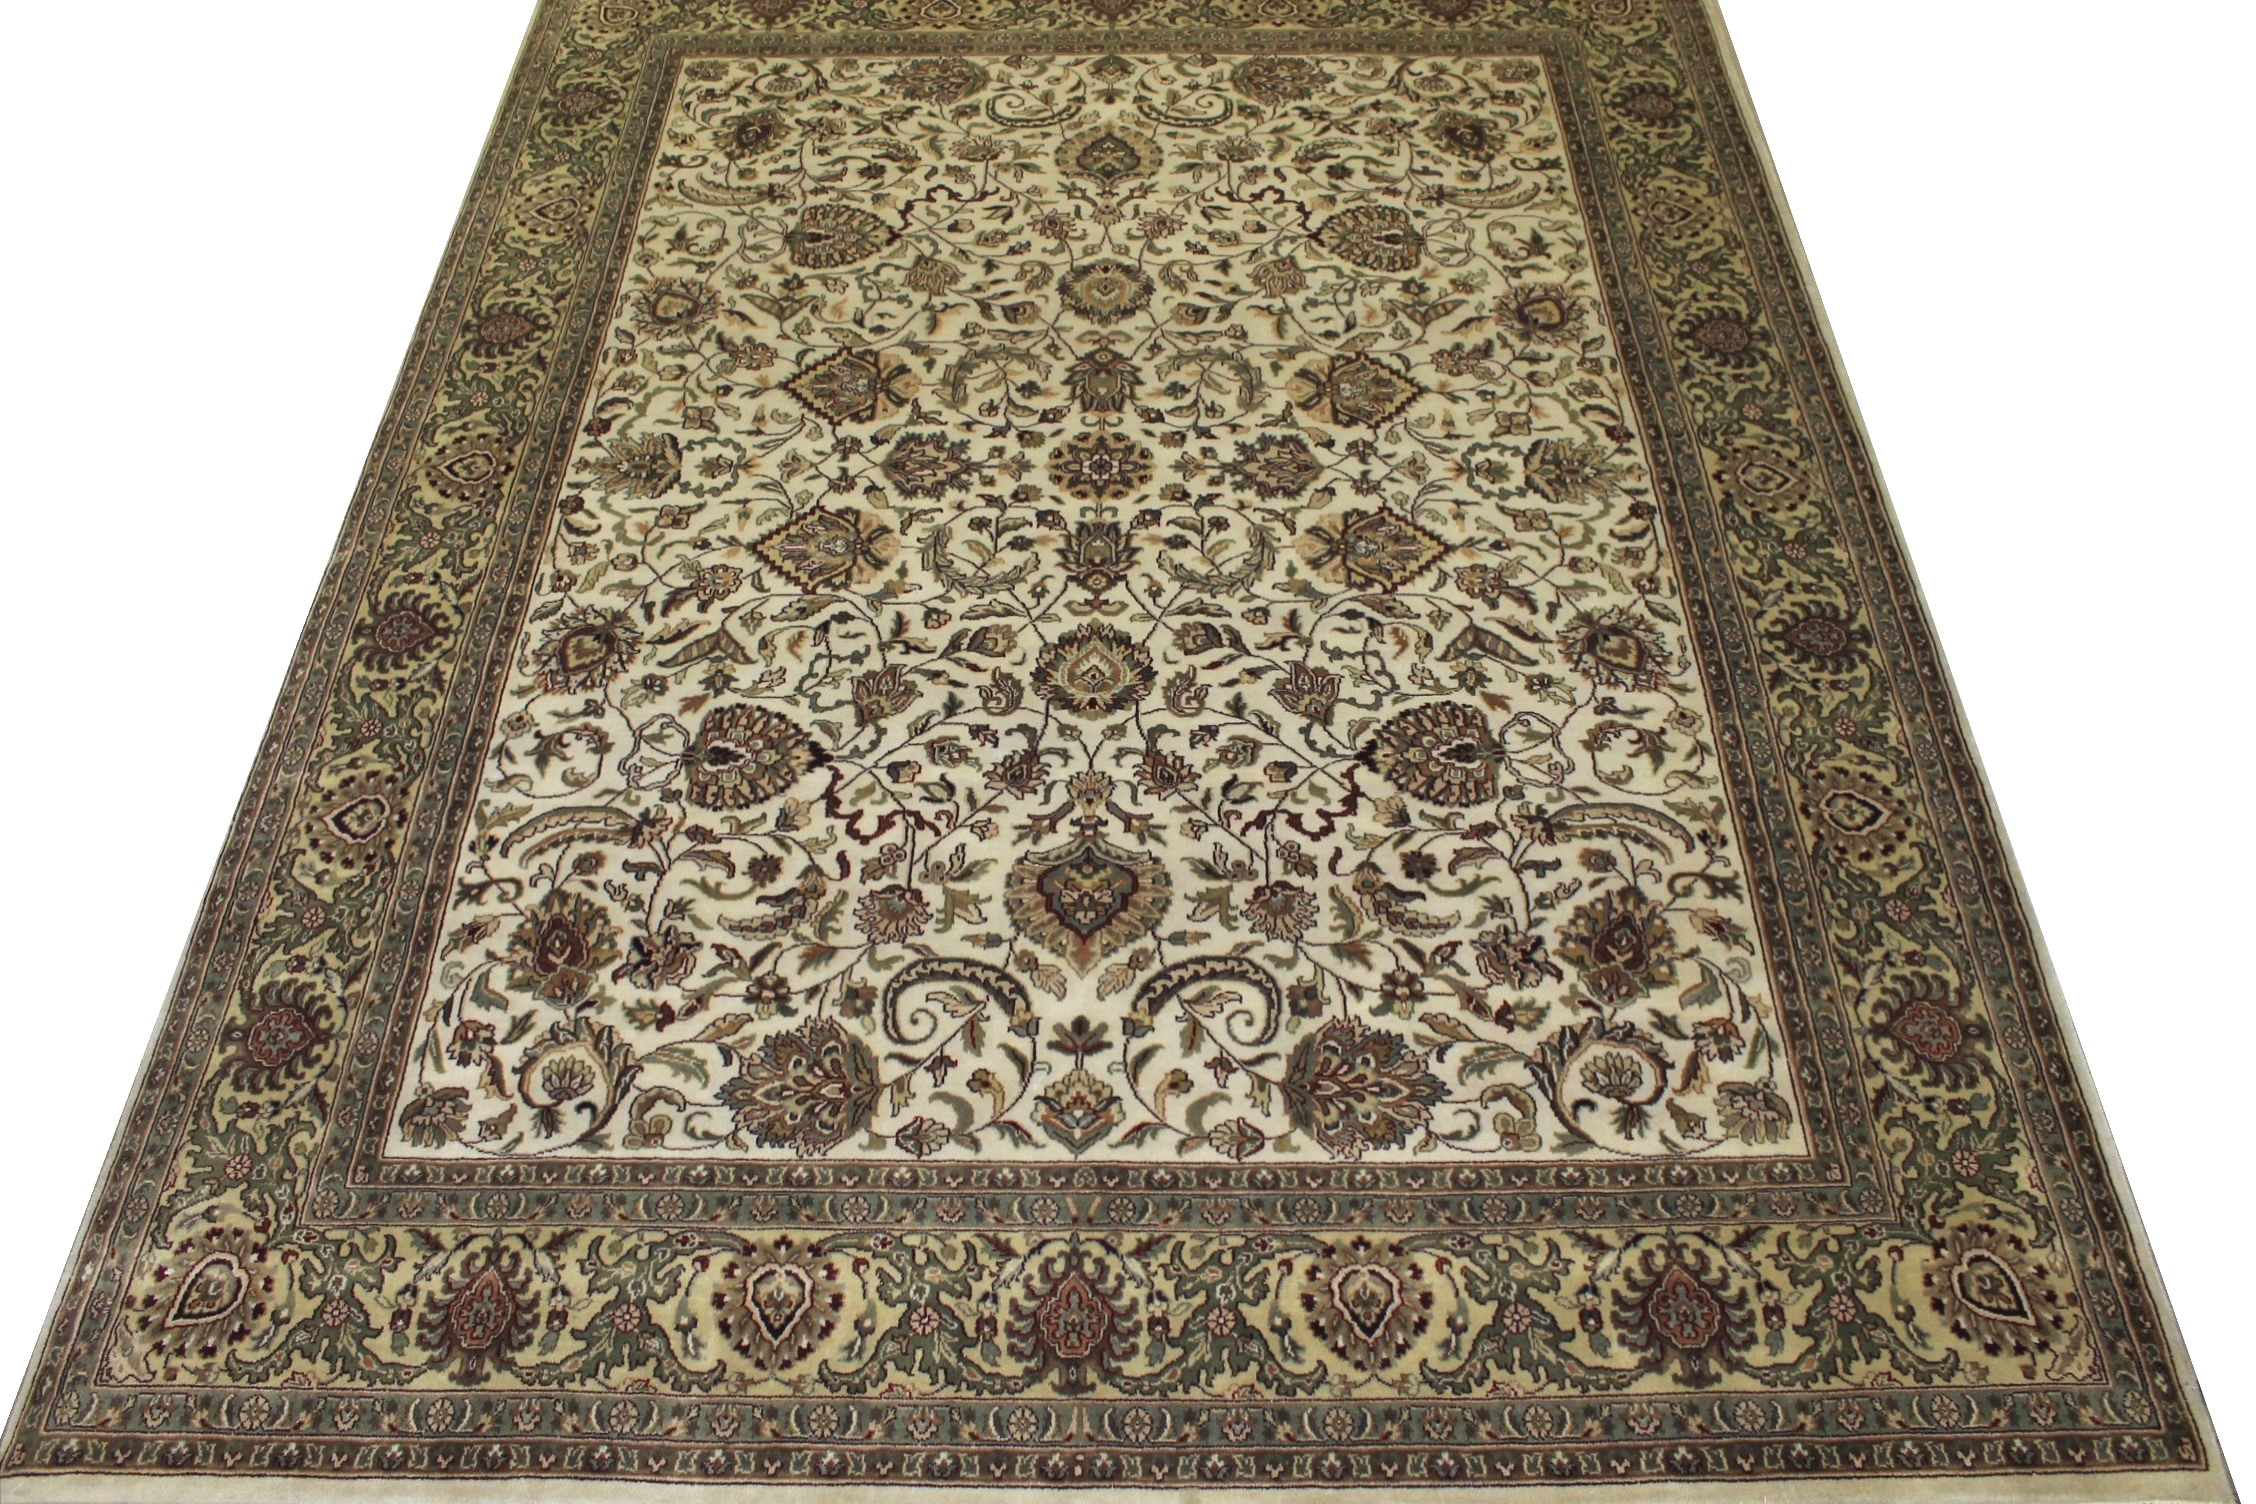 8x10 Traditional Hand Knotted Wool Area Rug - MR6428